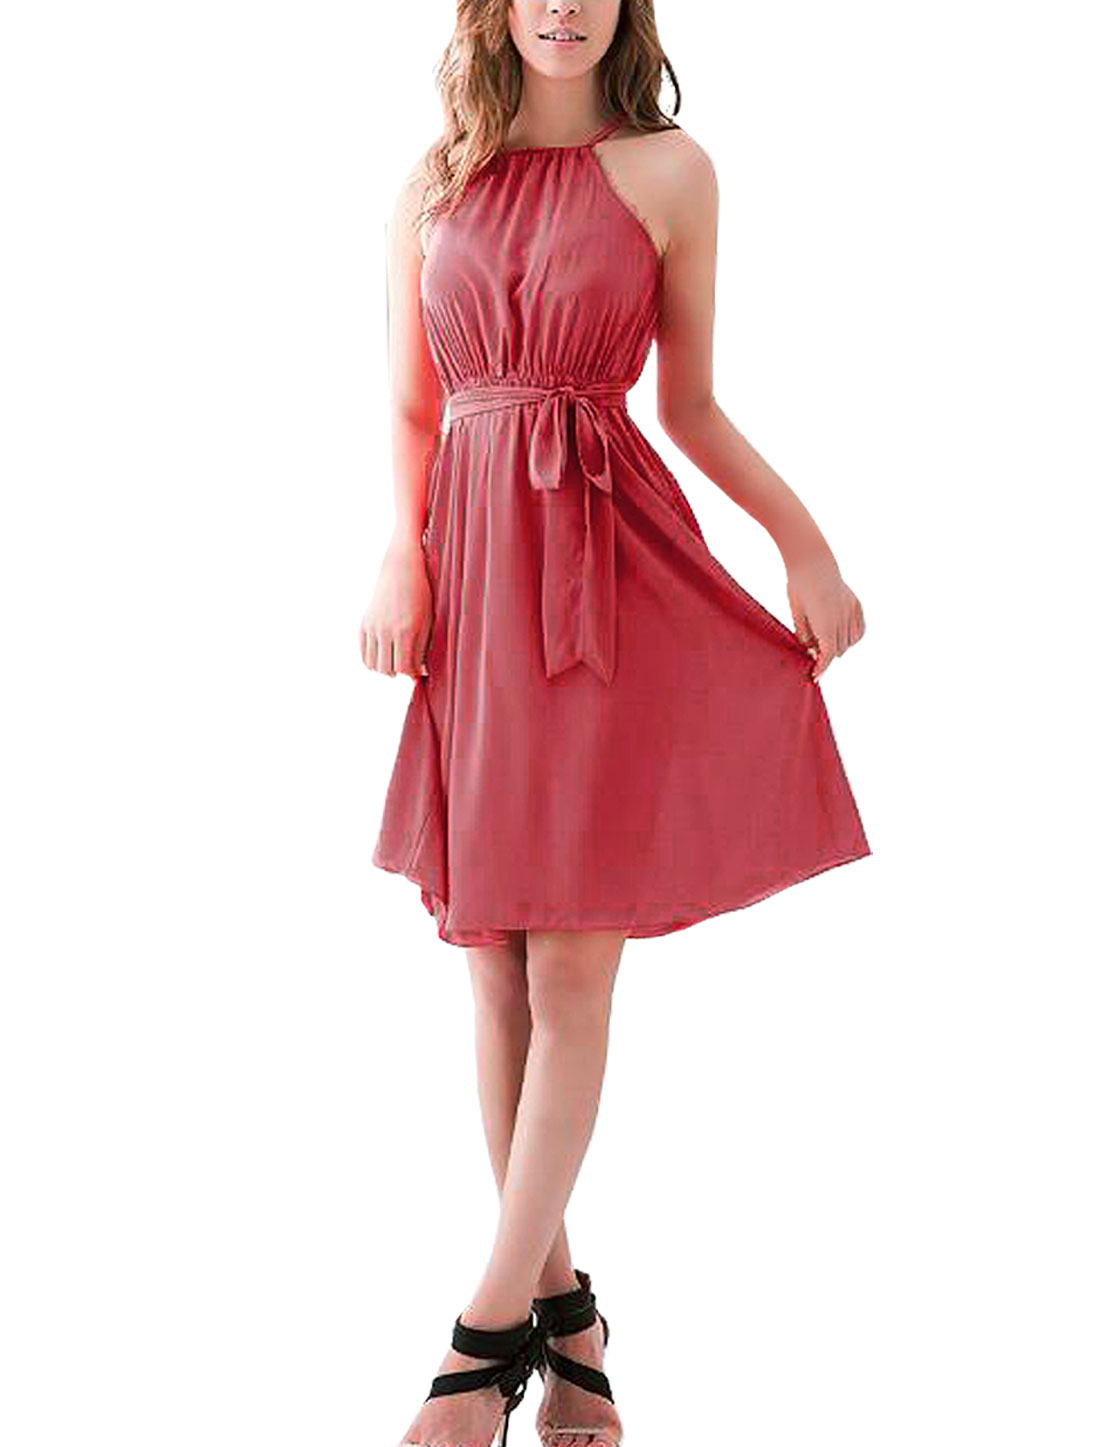 Self Tie Neck Sleeveless Watermelon Red Chiffon Dress XS for Women